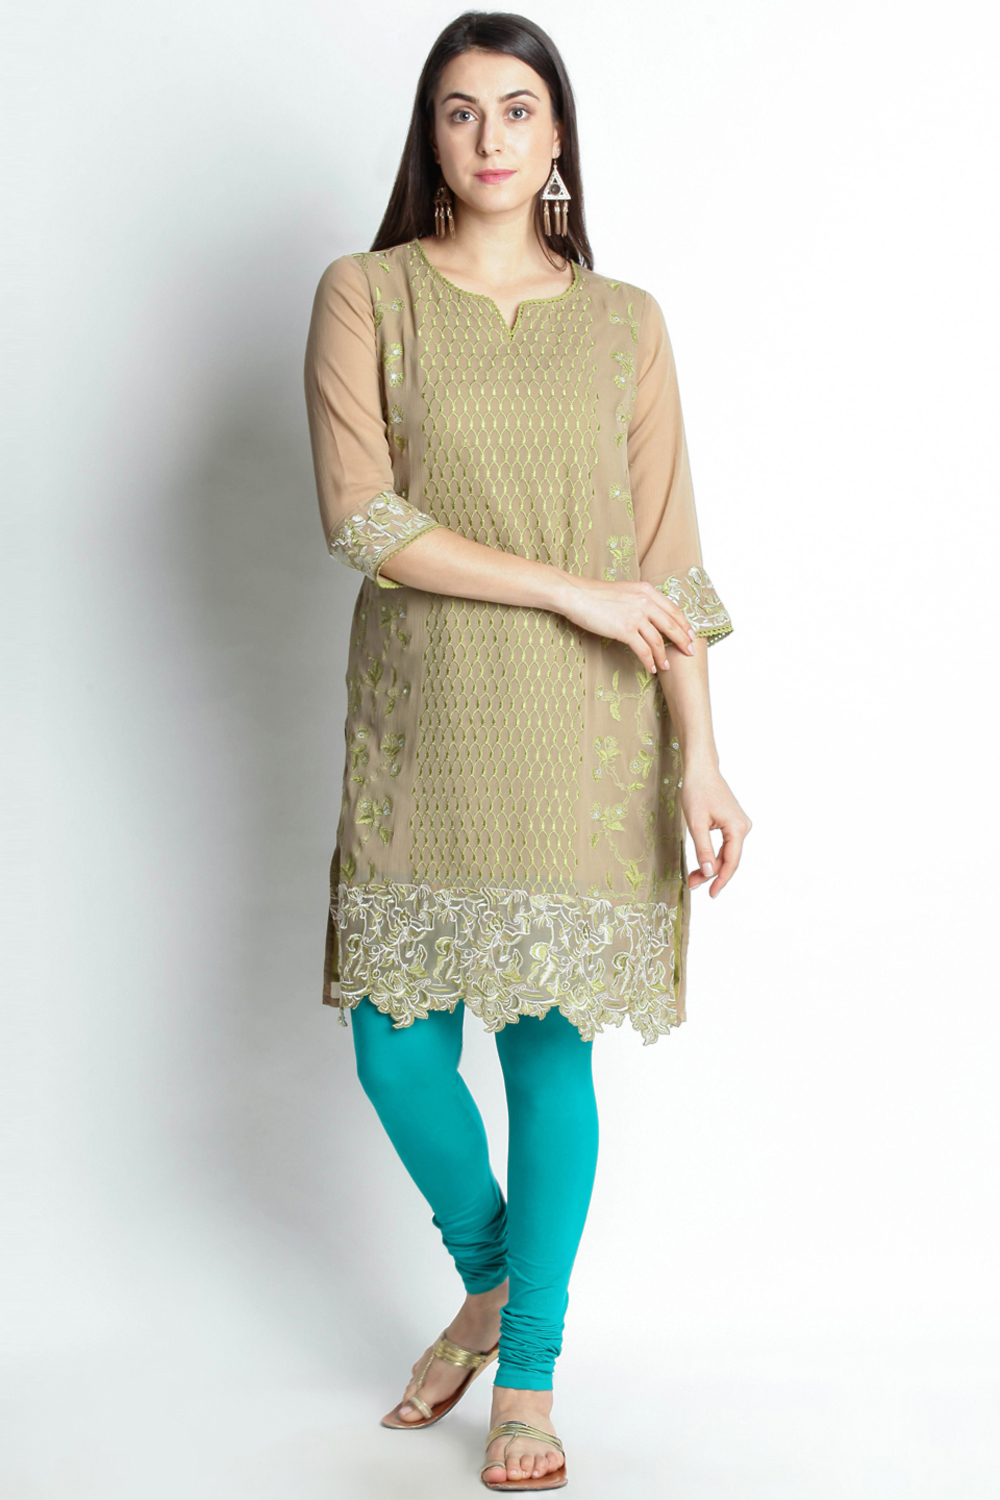 435560b8400 Pantaloons Kurtas   Kurtis for Women - Shop Online